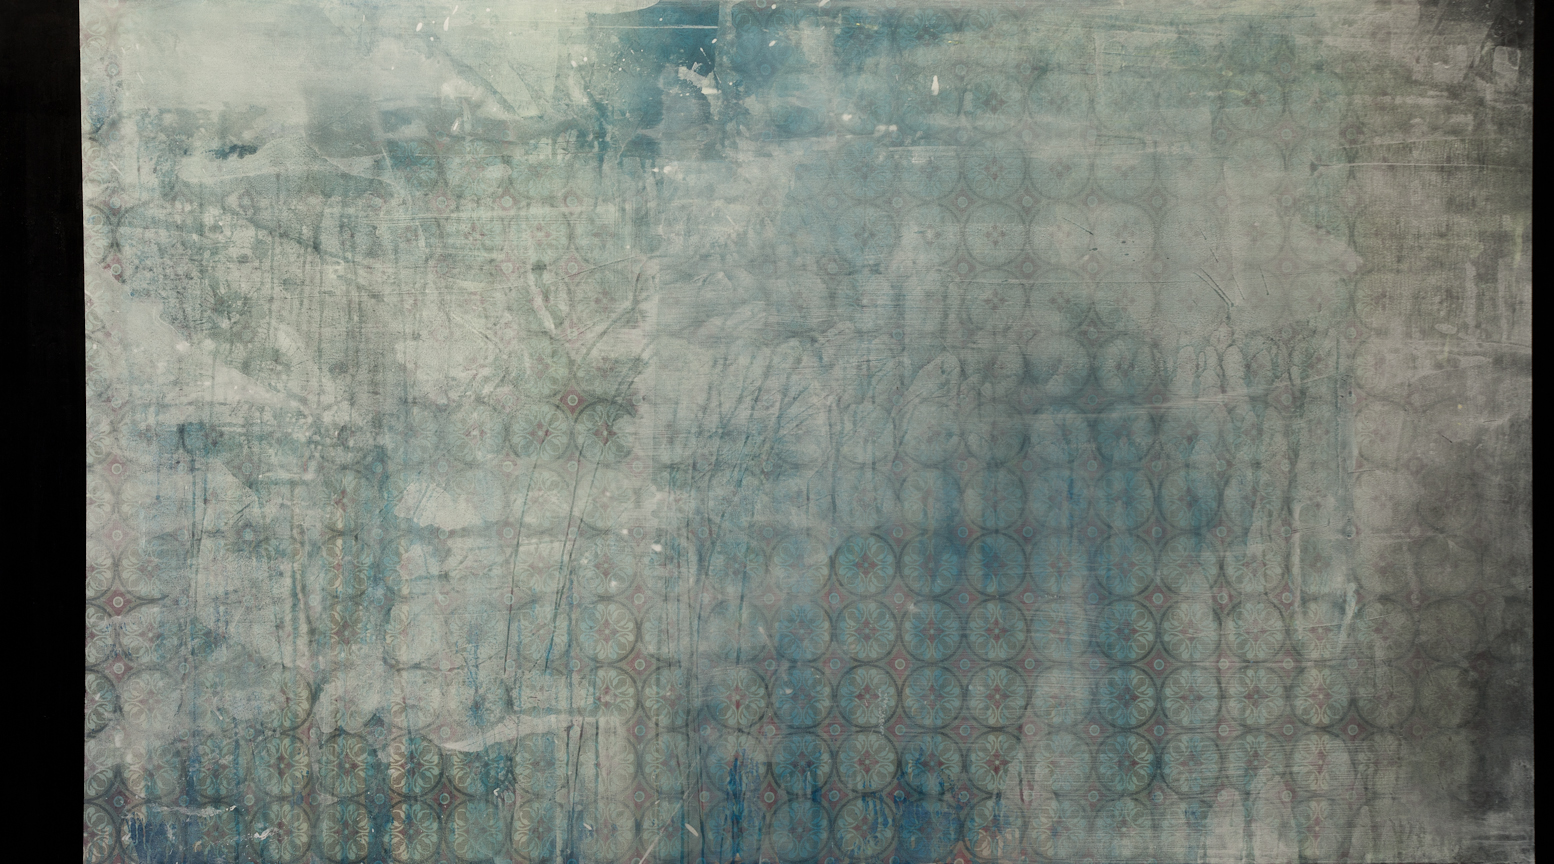 "6777, Acrylic and Oil on Printed Fabric, 72"" x 42"", 2013"